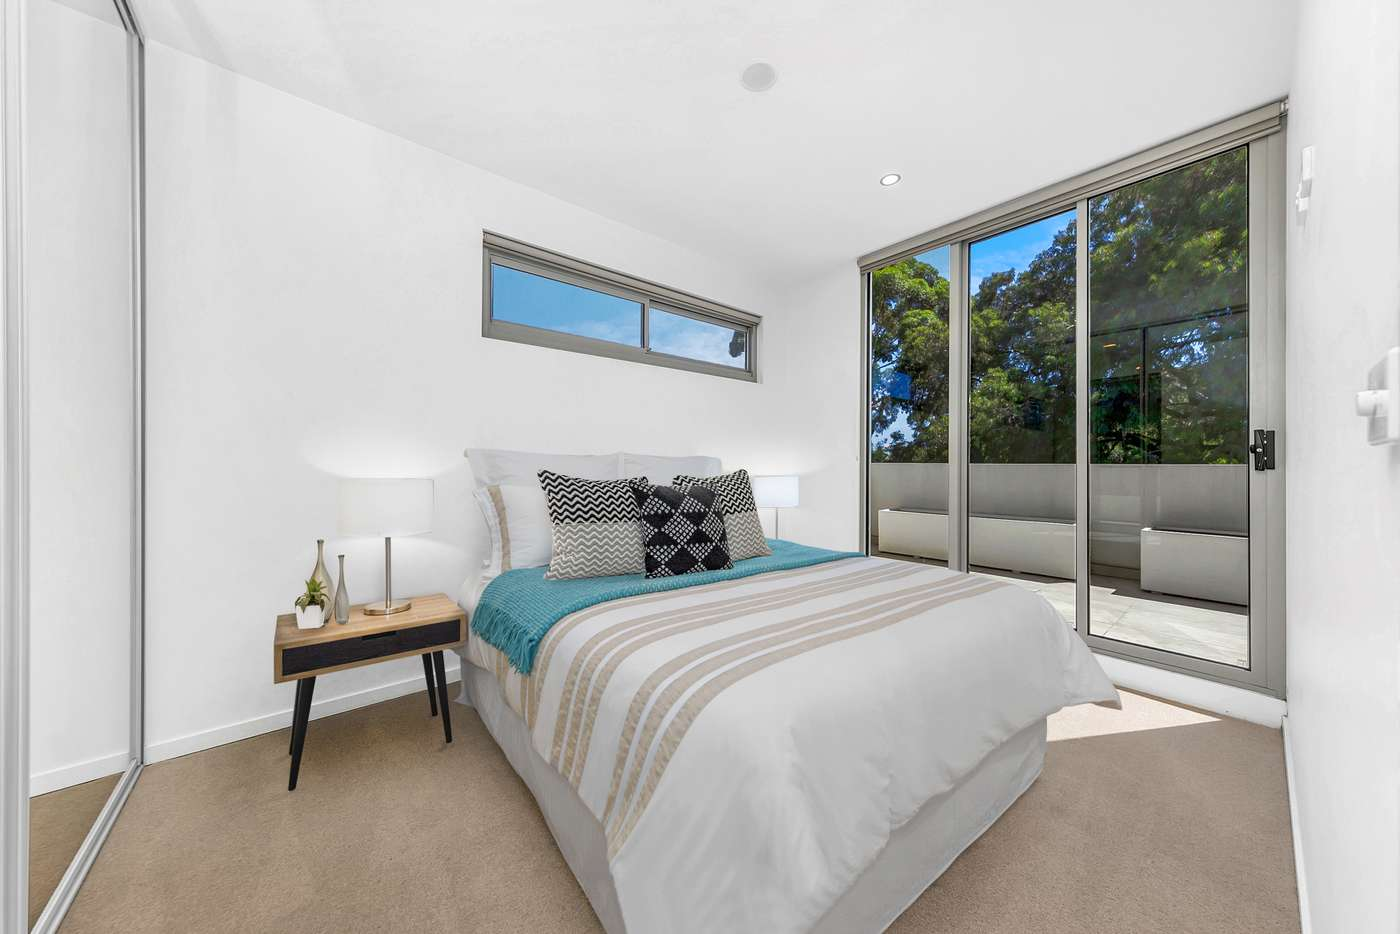 Fifth view of Homely apartment listing, 101/264 Waterdale Road, Ivanhoe VIC 3079